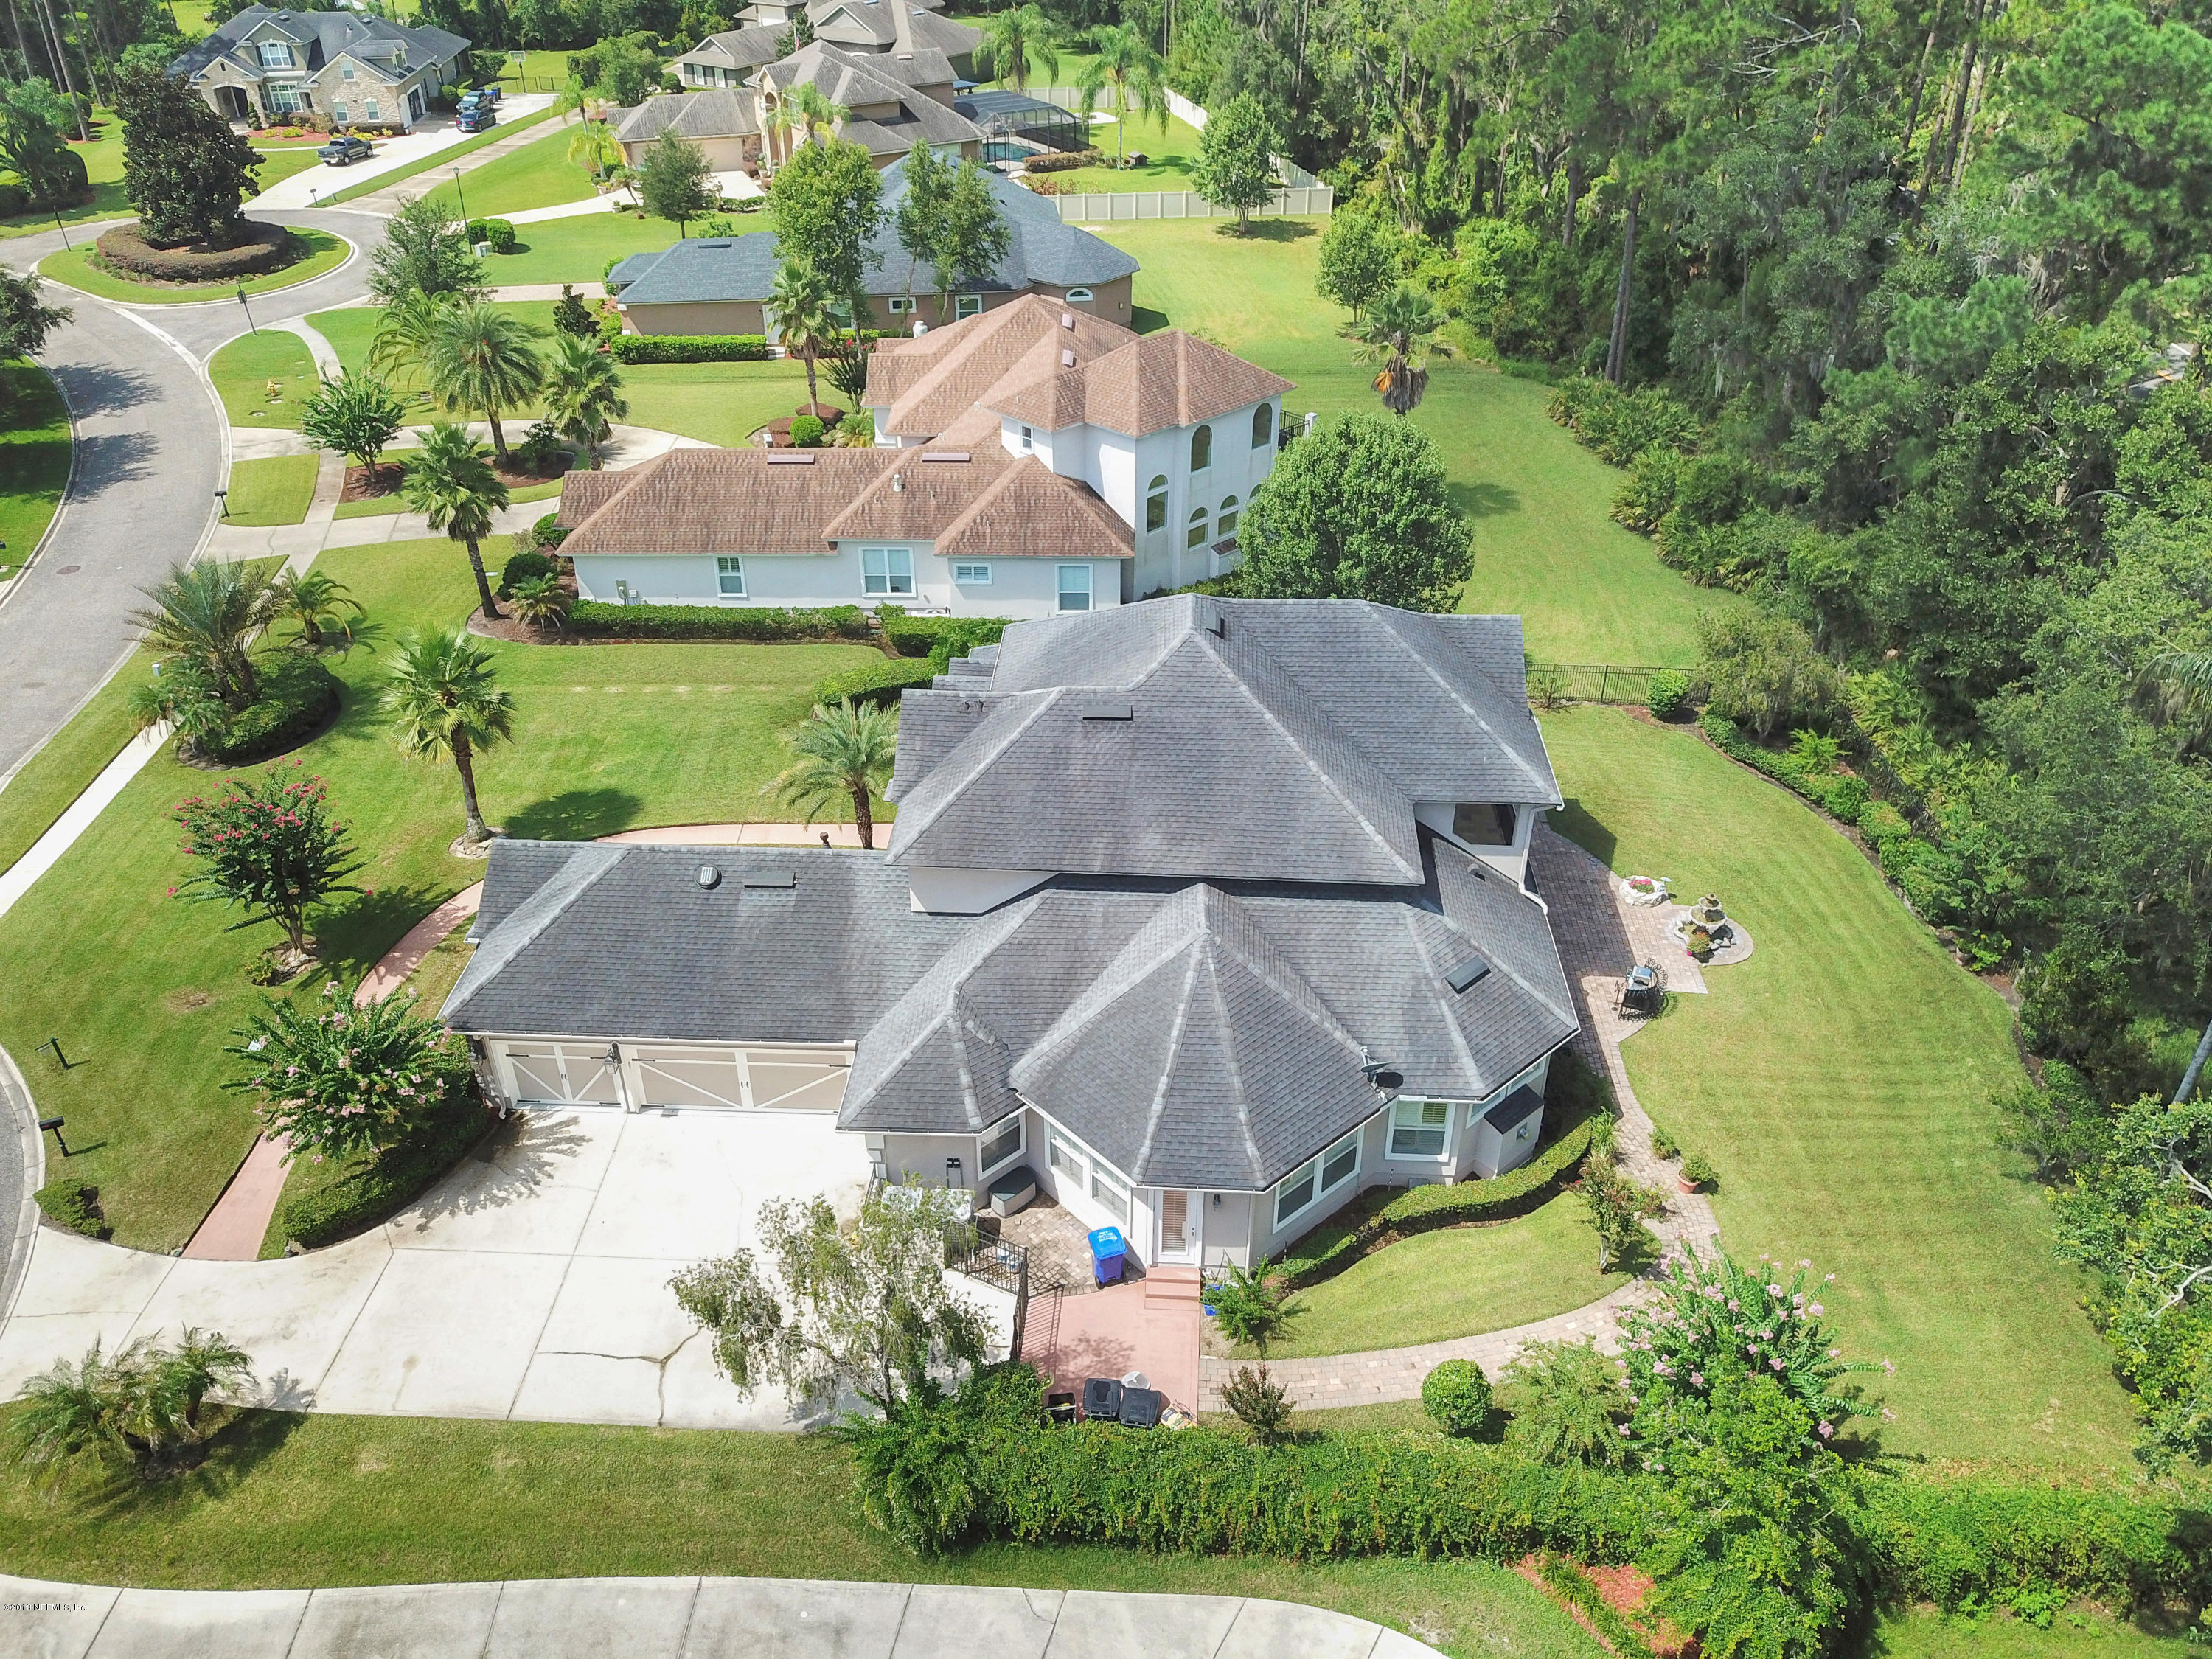 309 SUMMERSET, ST JOHNS, FLORIDA 32259, 5 Bedrooms Bedrooms, ,4 BathroomsBathrooms,Residential - single family,For sale,SUMMERSET,951691